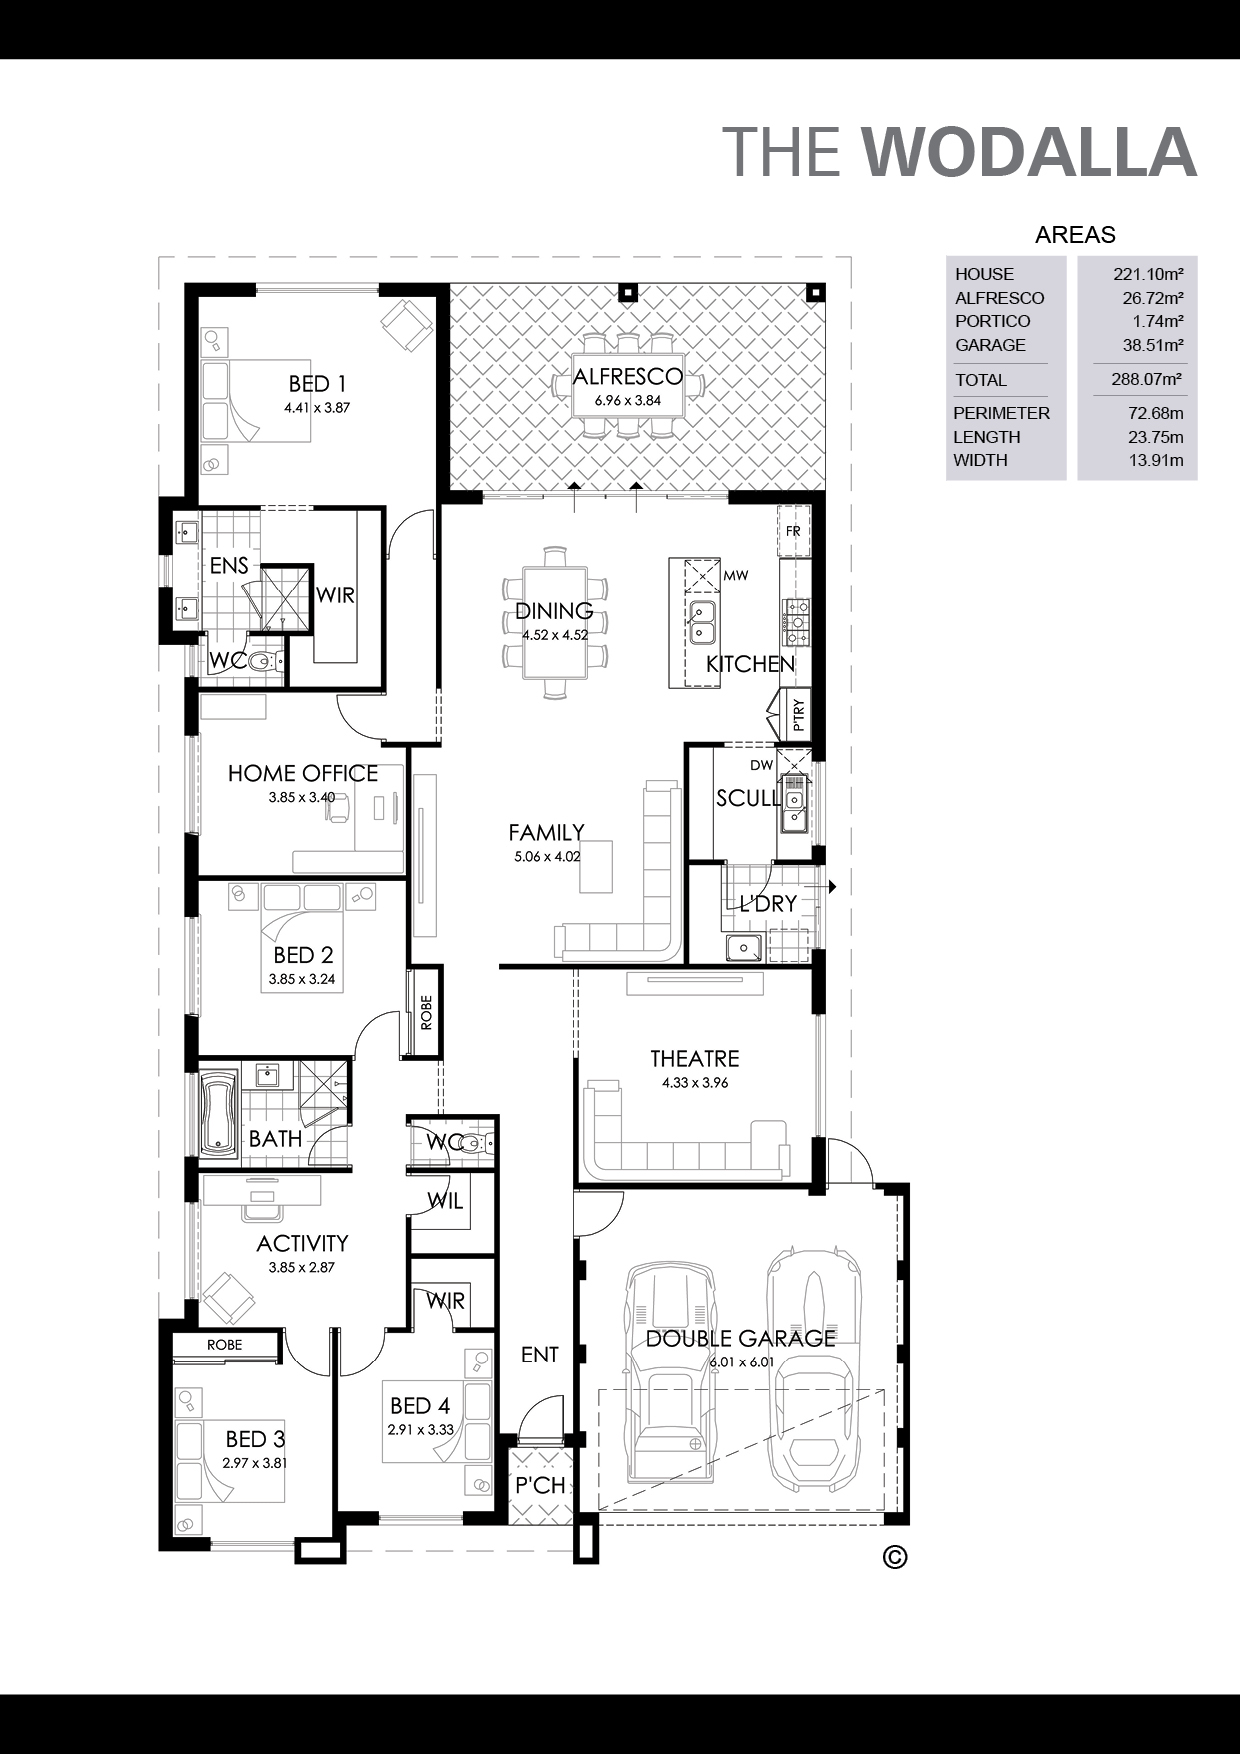 The Wodalla Floorplan